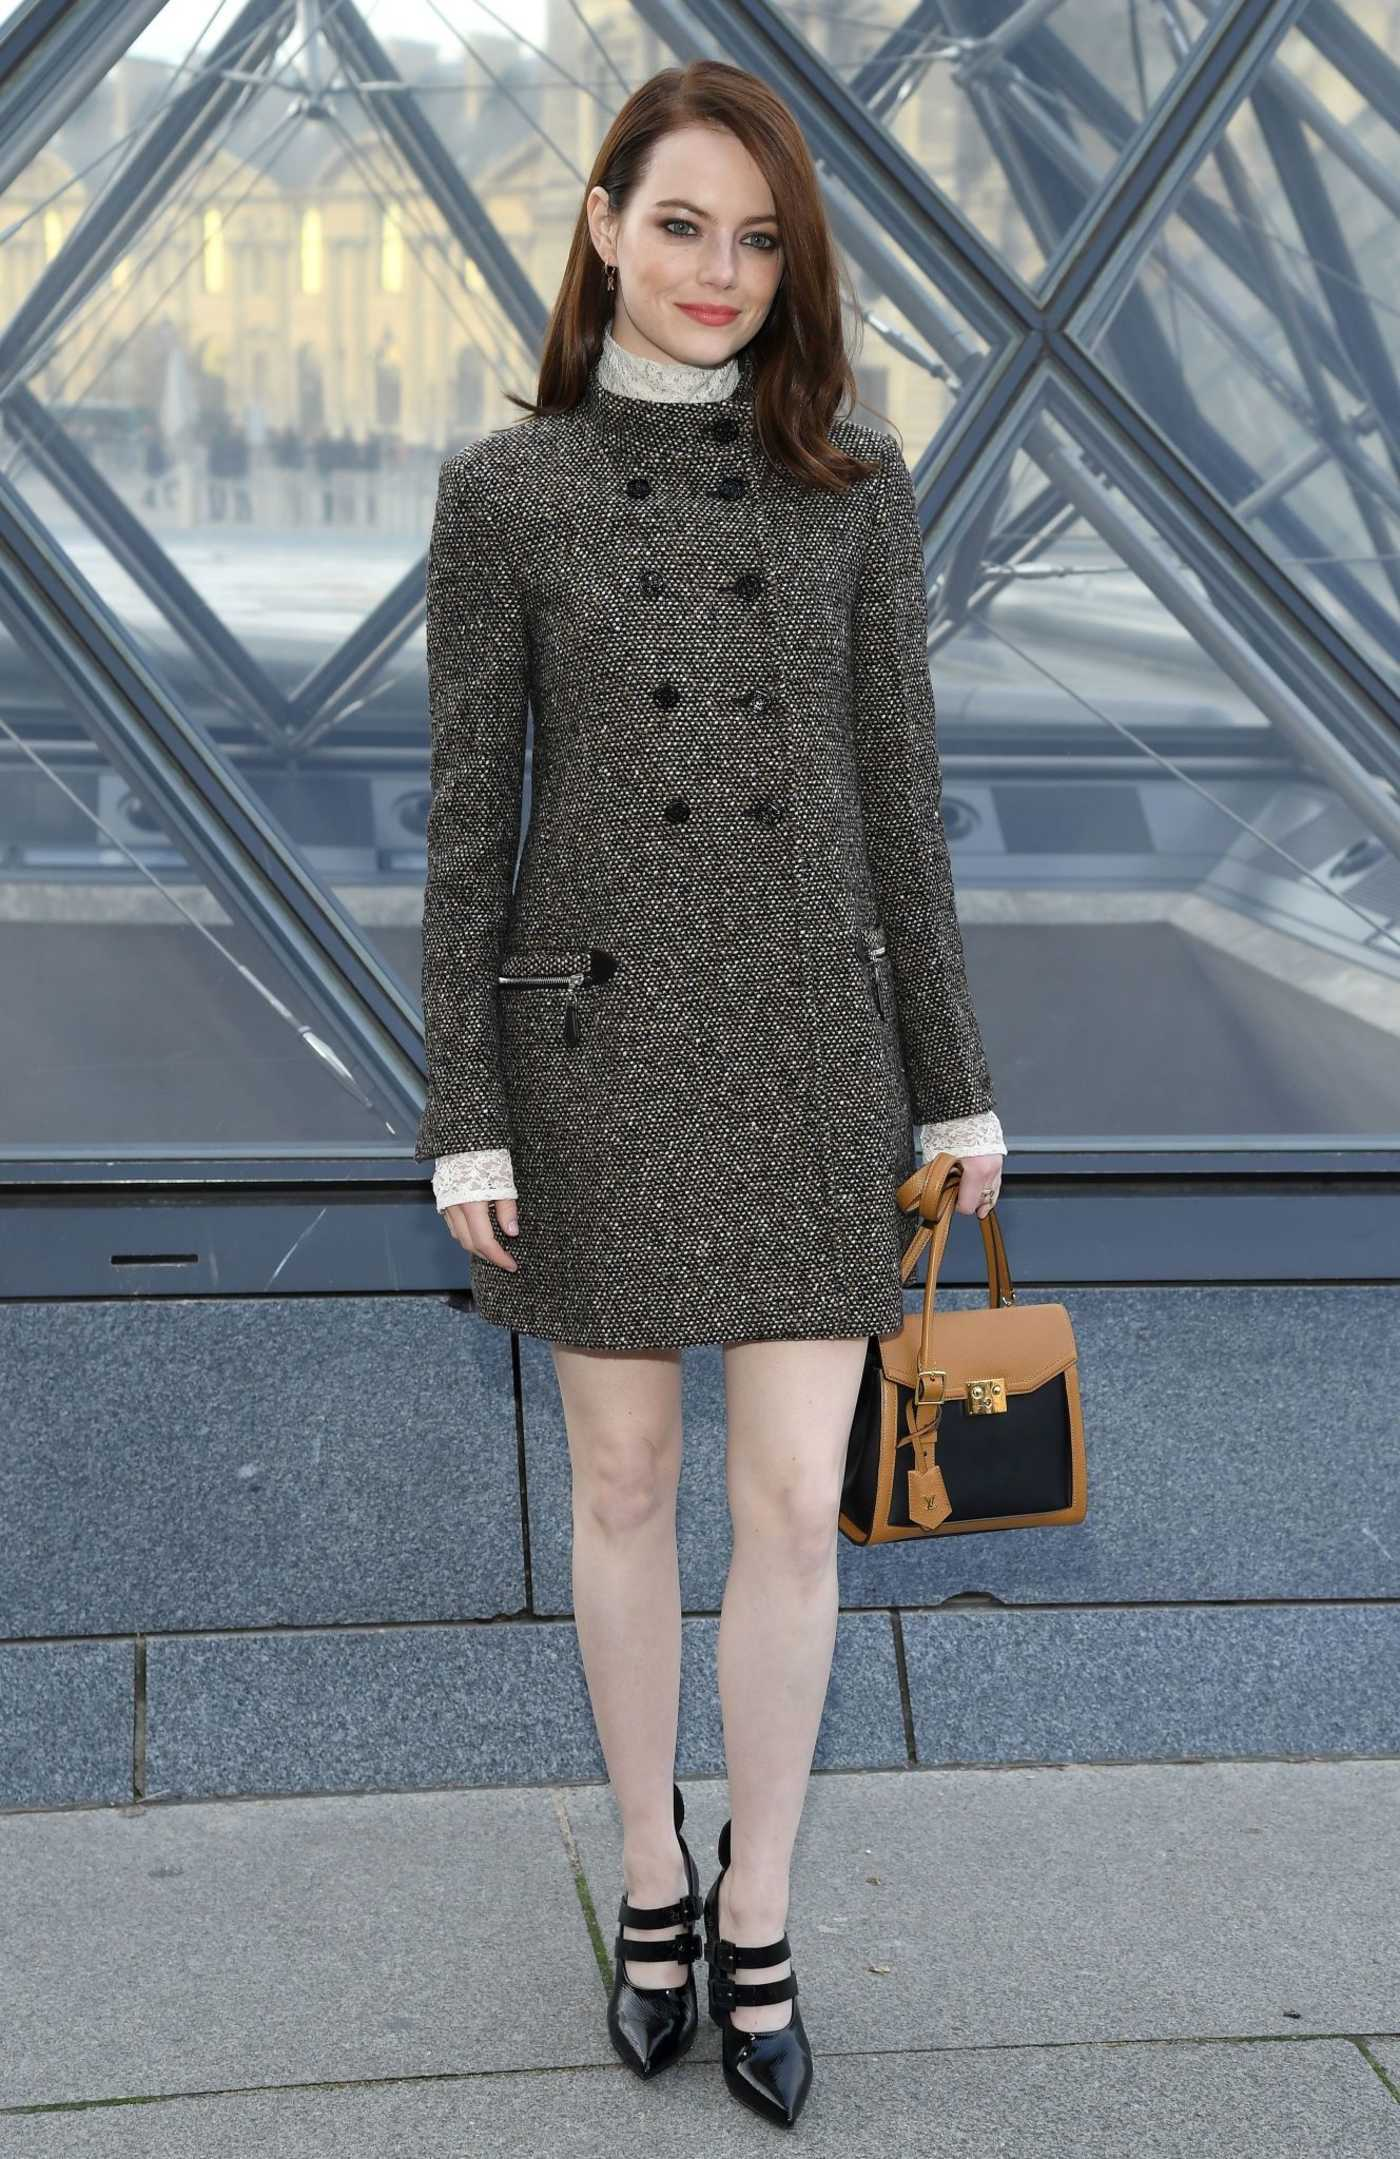 Emma Stone Attends the Louis Vuitton Fashion Show During PFW in Paris 03/05/2019